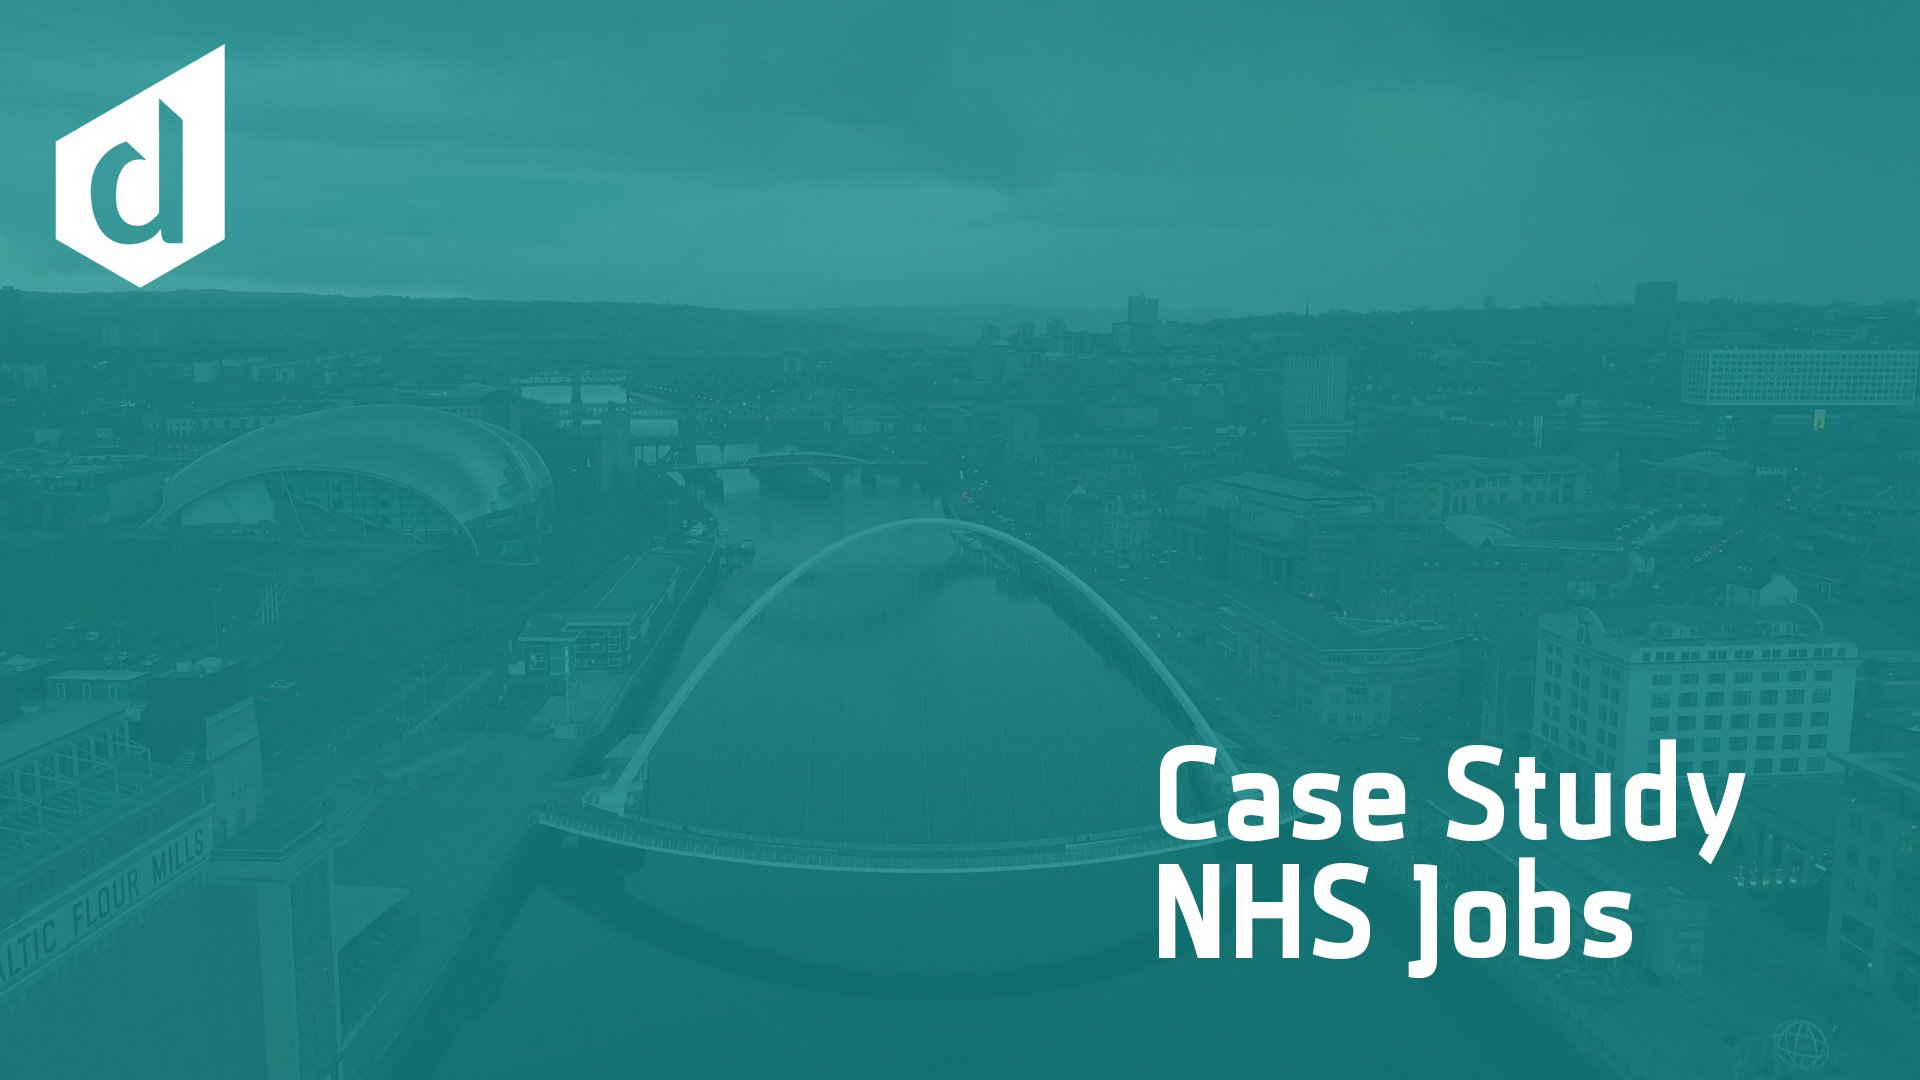 Case Study - NHS Jobs with the Tyne bridge in the background